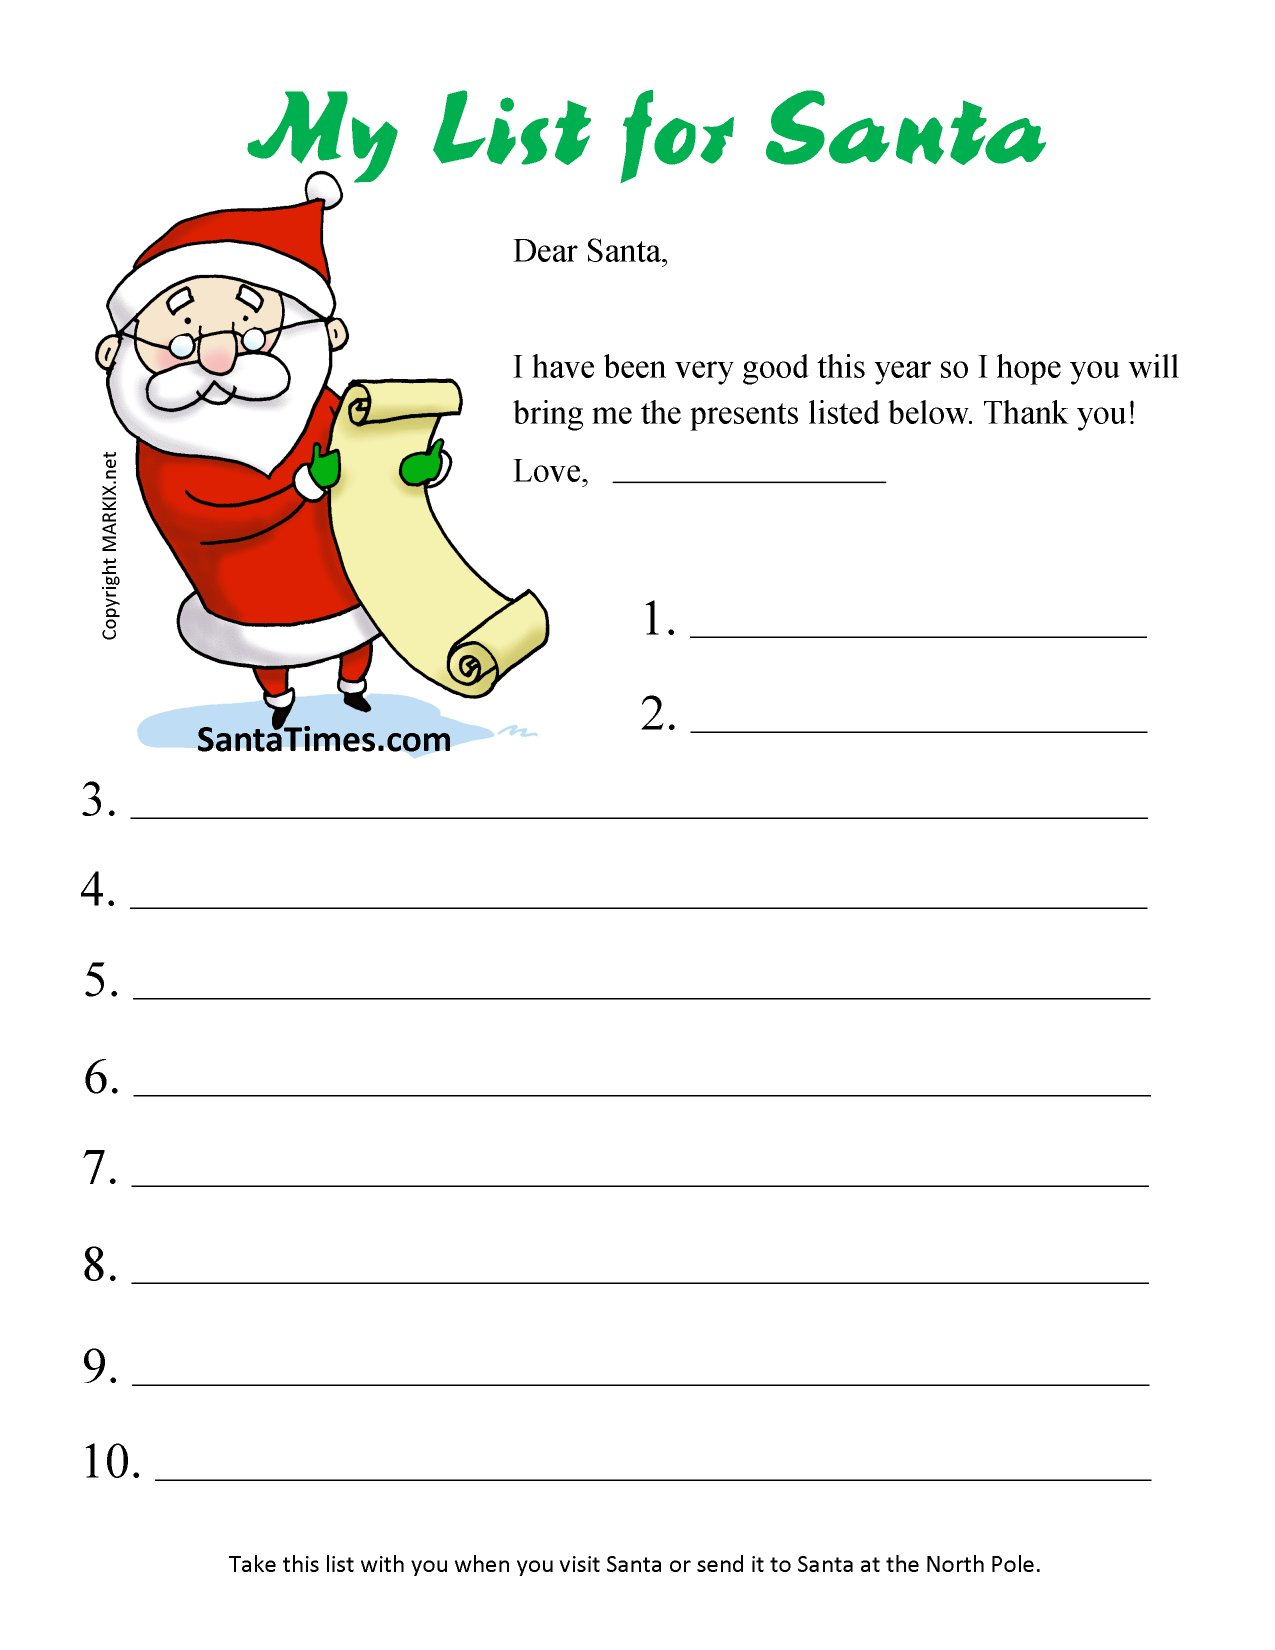 Santa Christmas List Coloring Page With Print Your Wish For